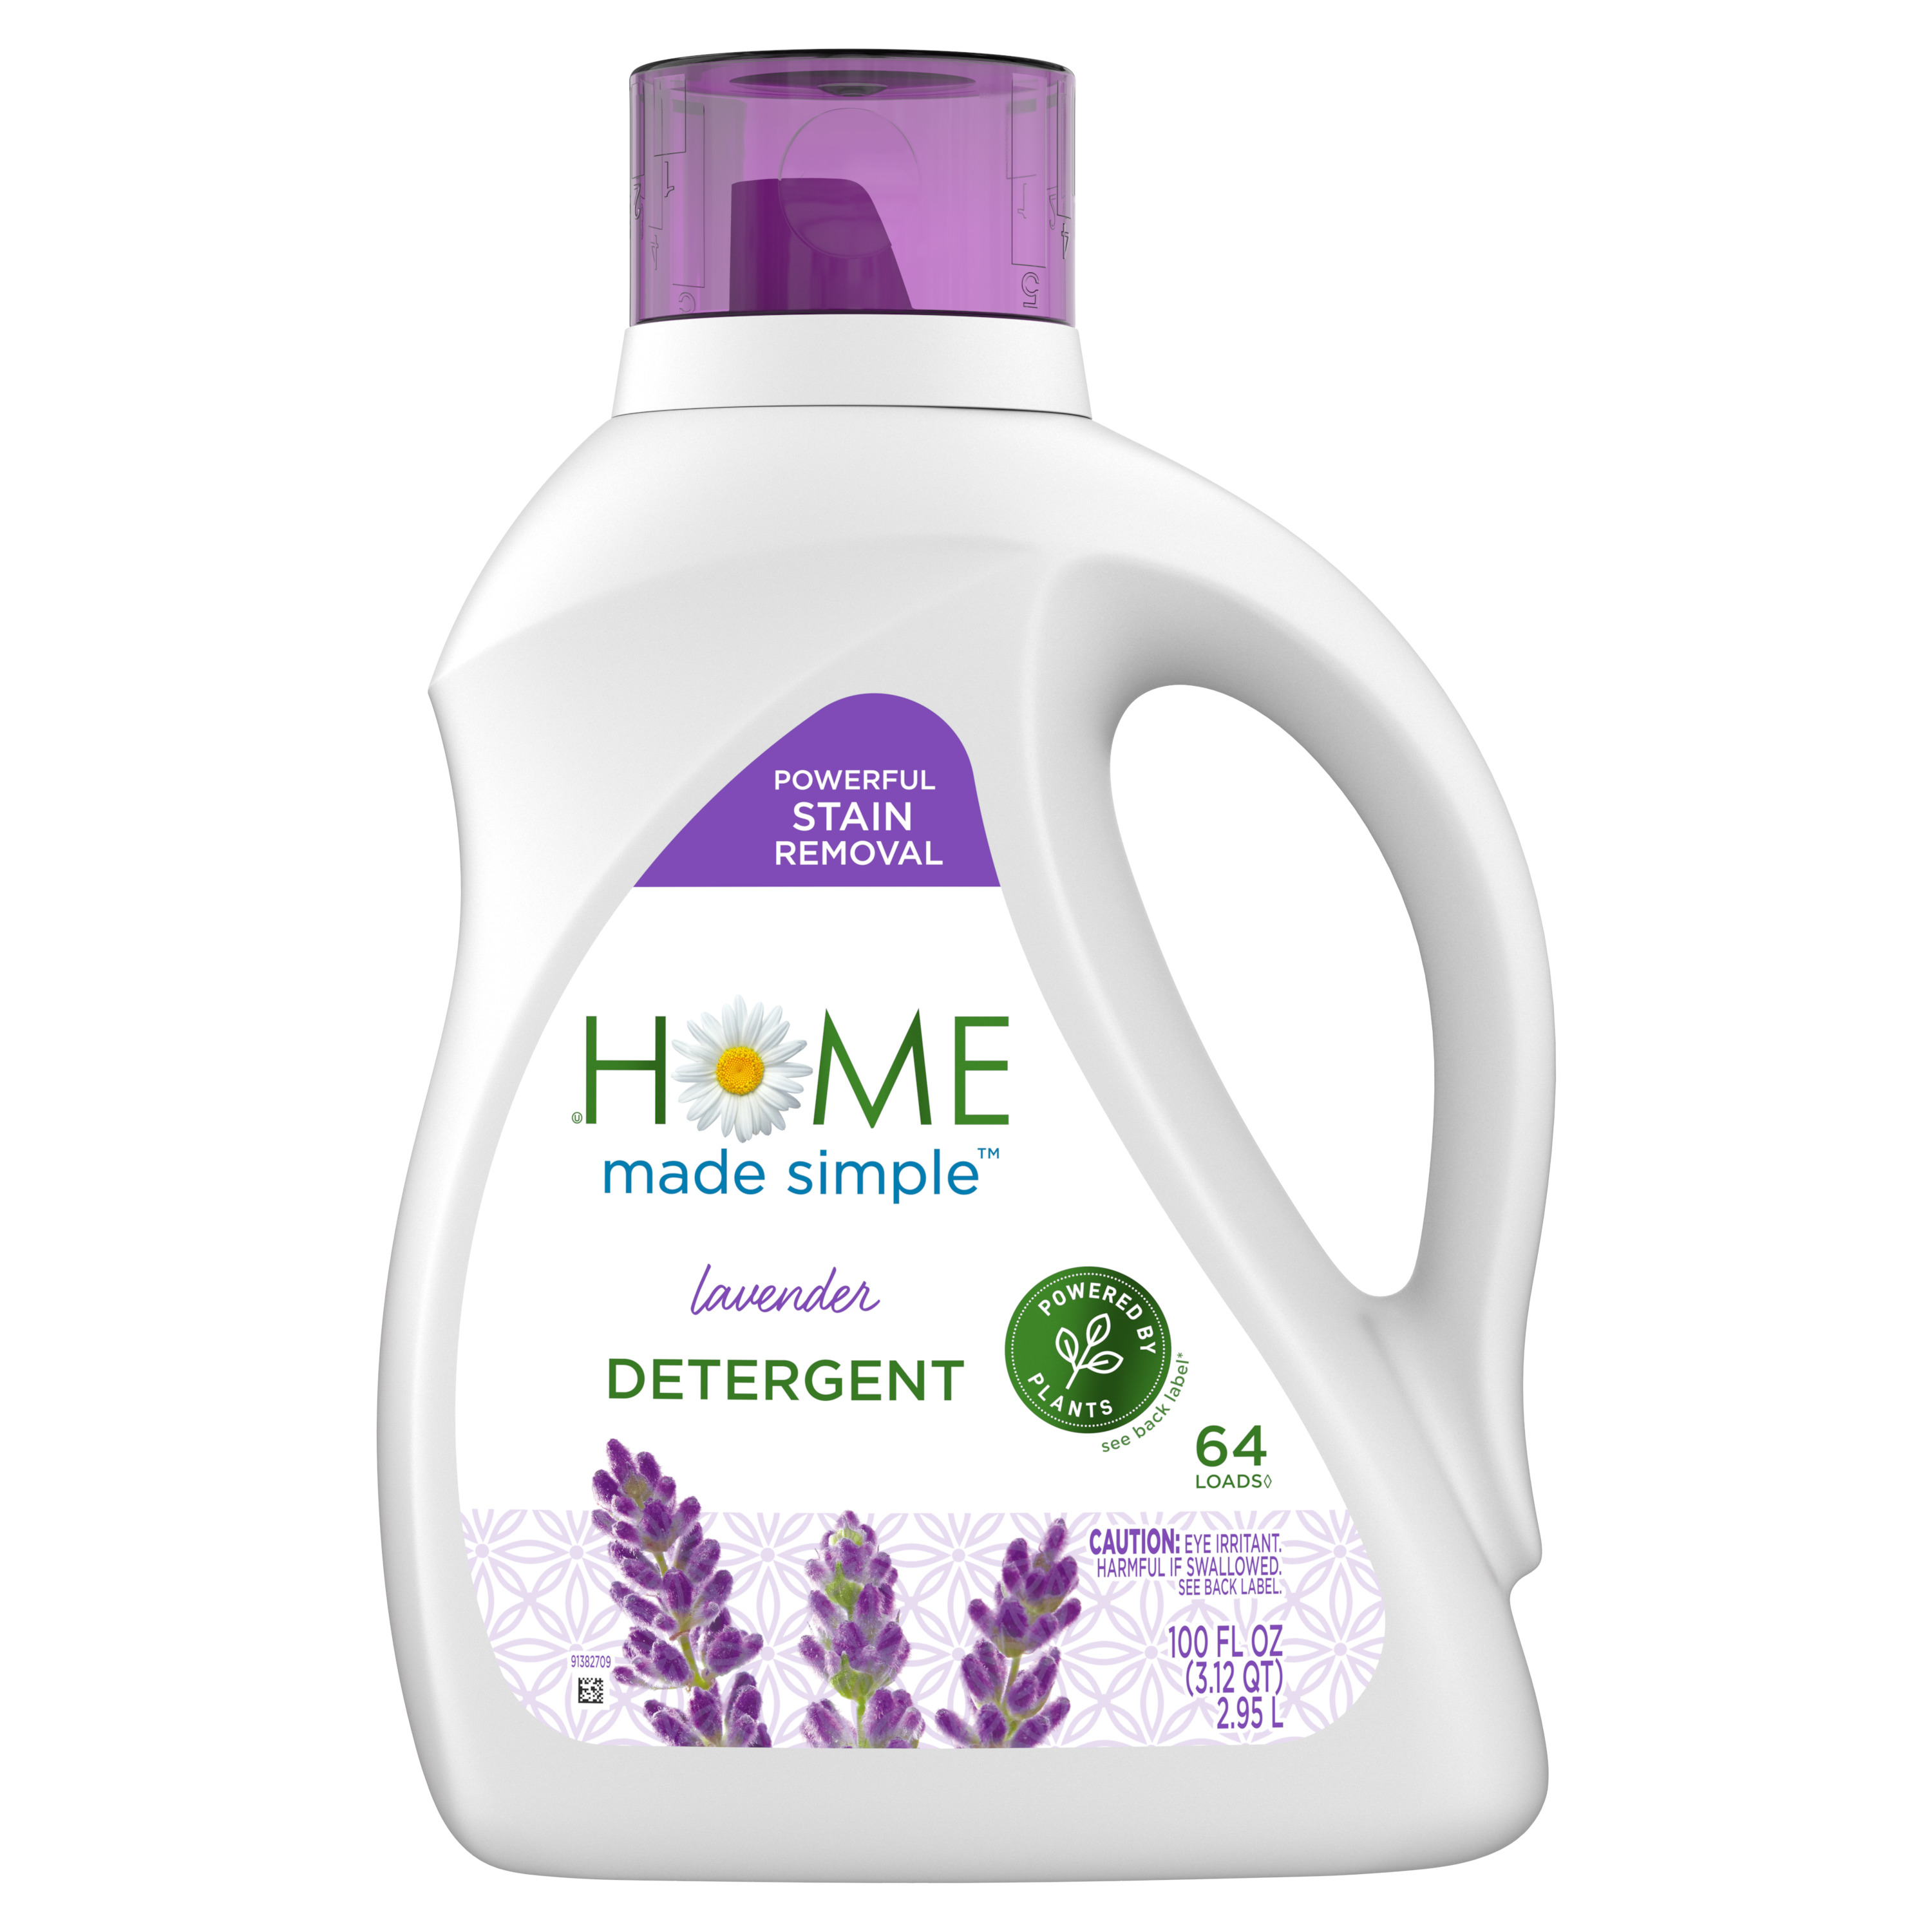 Home Made Simple Laundry Detergent, 64 loads, Lavender Scent, 100 fl oz